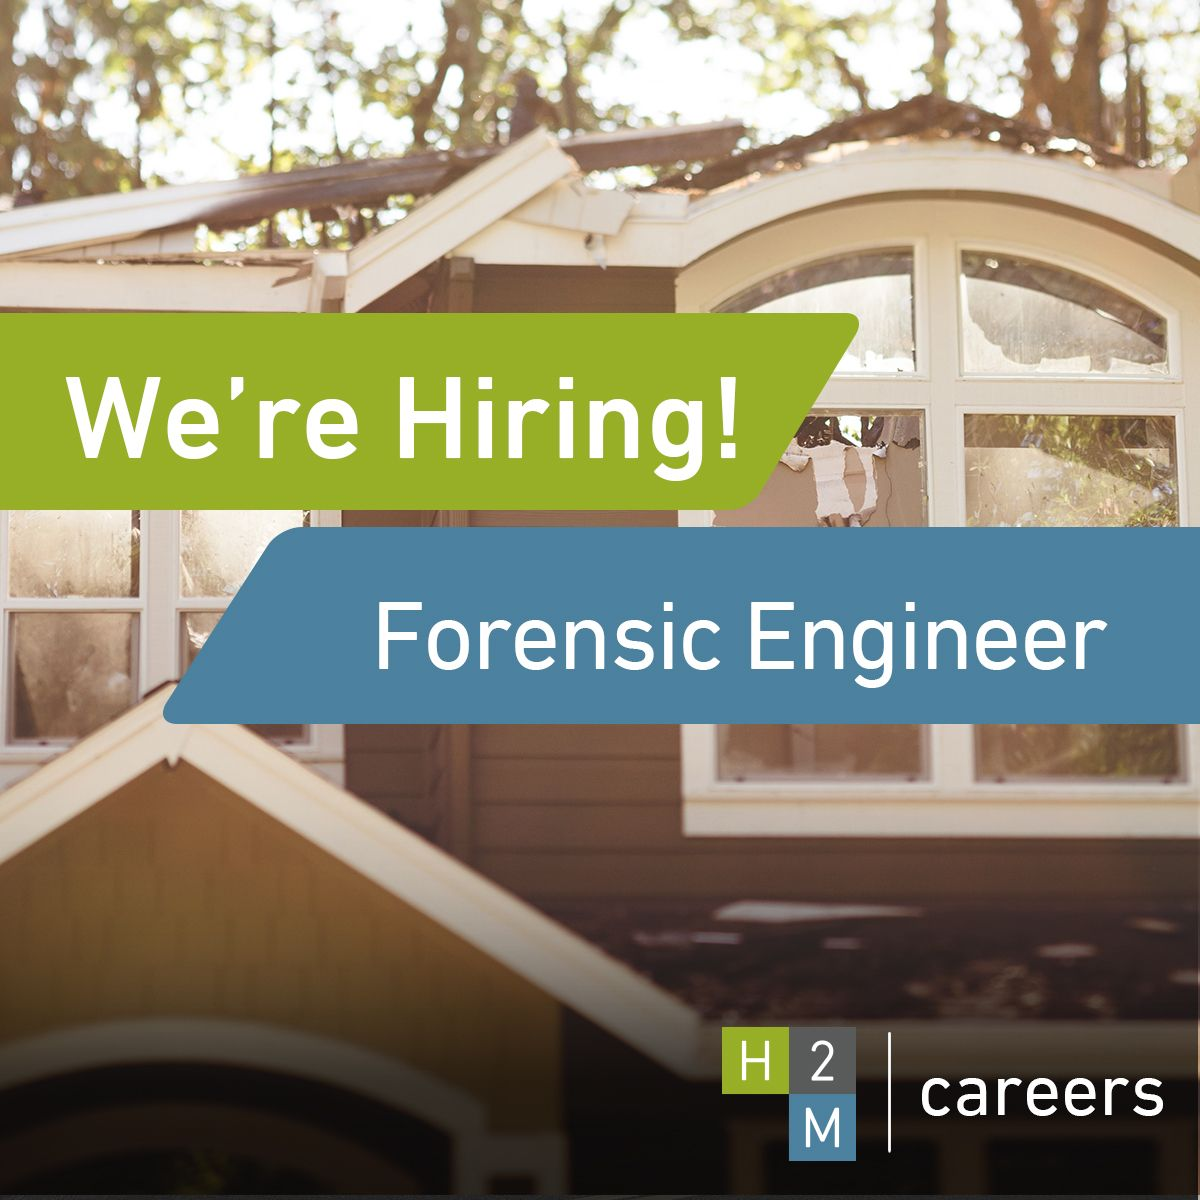 We Re Hiring A Forensic Engineer With 5 Years Of Experience In